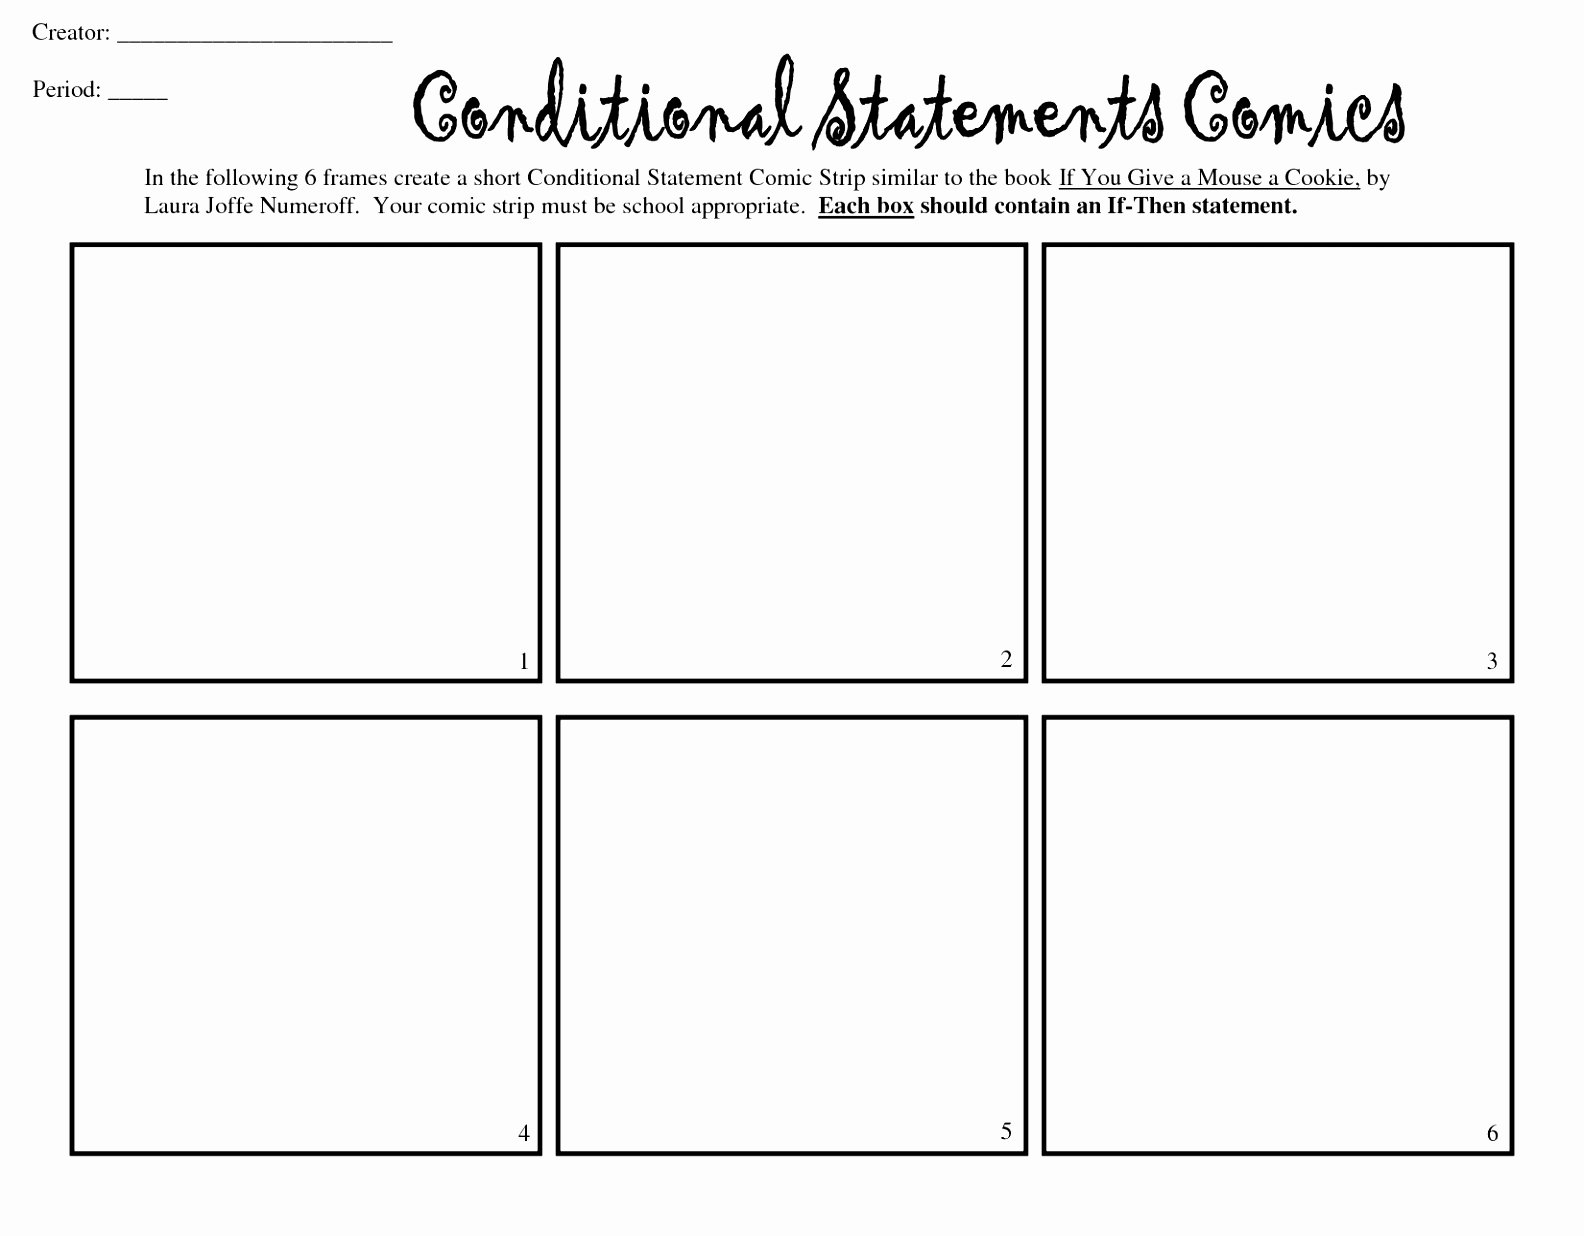 Comic Strip Template Word Awesome 9 Printable Blank Ic Strip Template for Kids Iowui